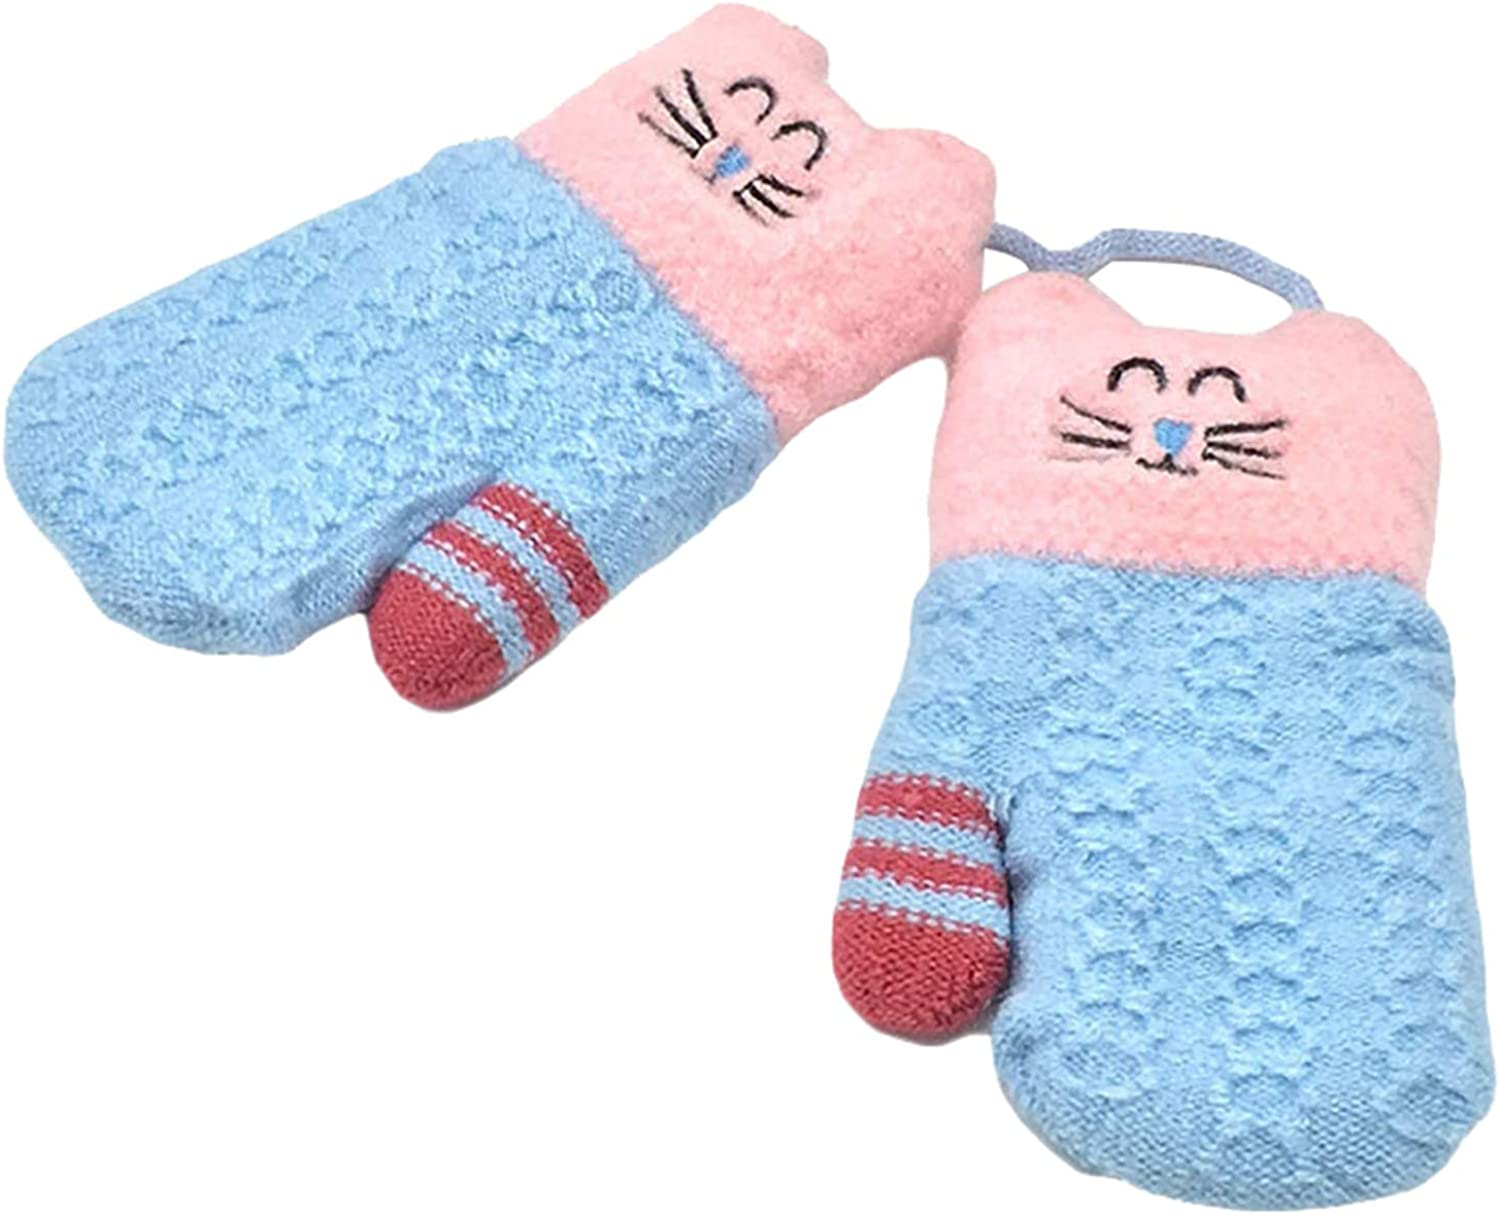 Kids Mittens, Kitten Embroidered Knitted Thermal Girls Cold Weather Gloves for Holiday Season New